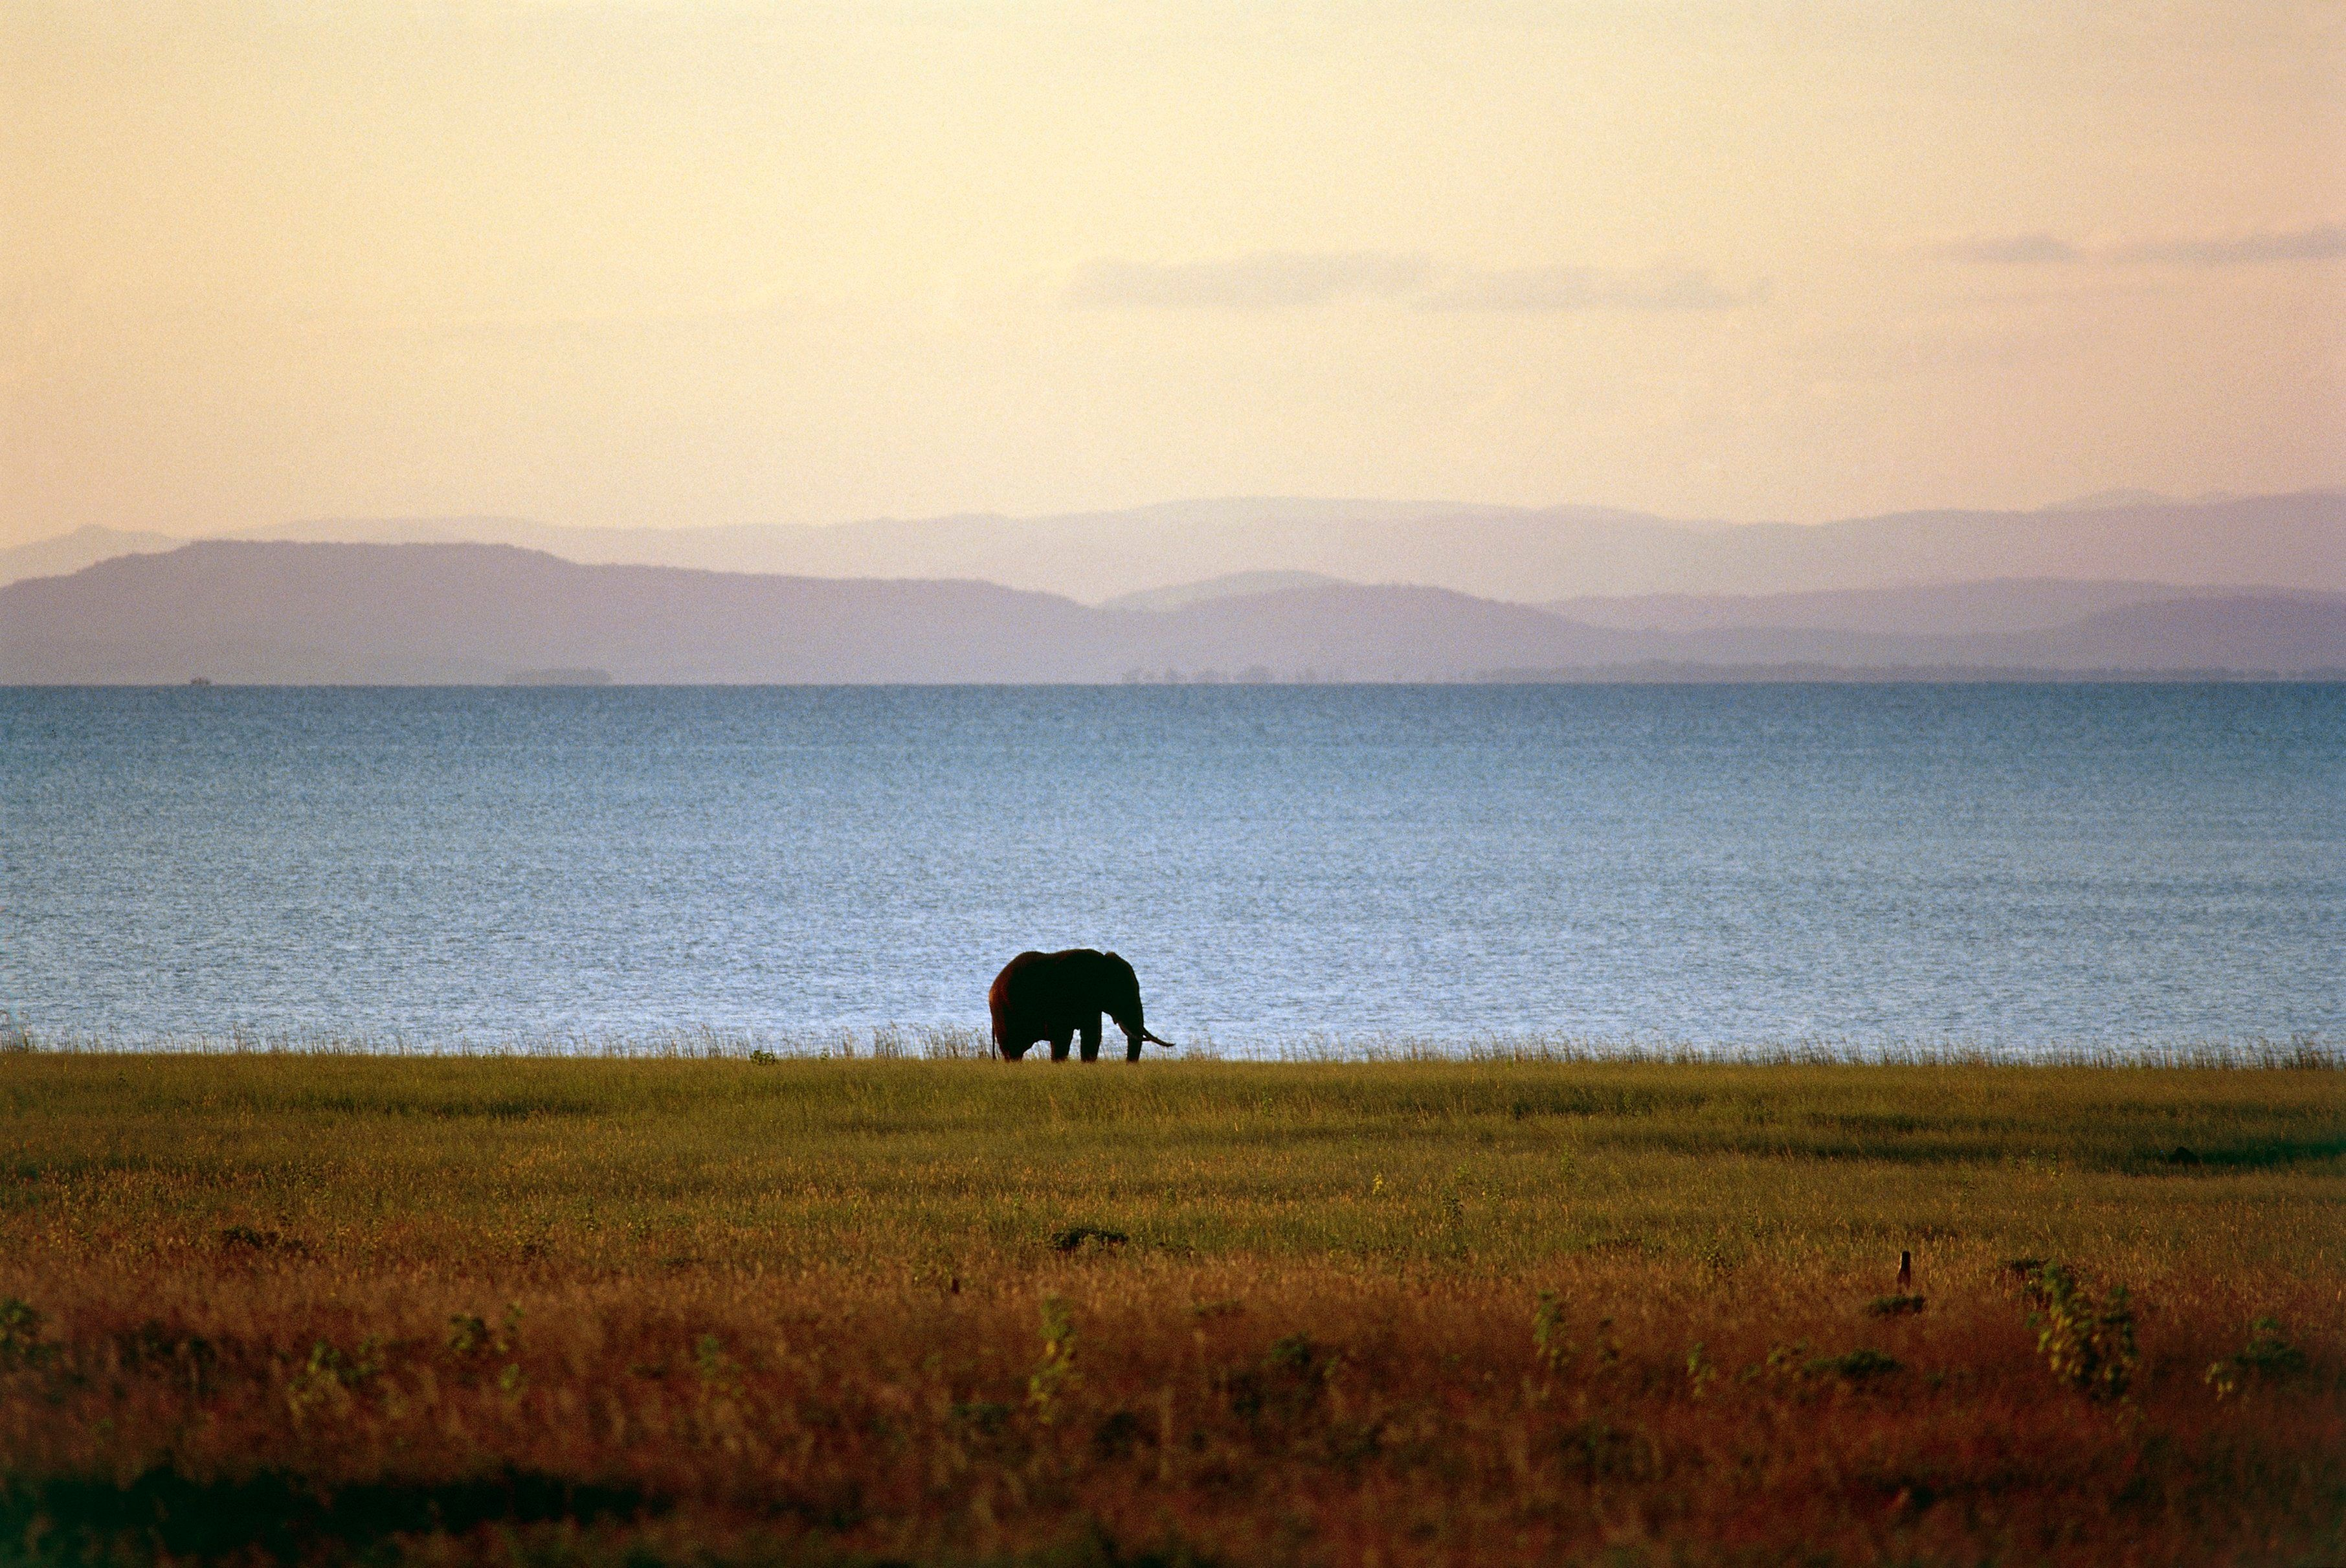 ZIMBABWE - MARCH 18: Elephant, Fothergill Island, Lake Kariba, Zimbabwe. (Photo by DeAgostini/Getty Images)